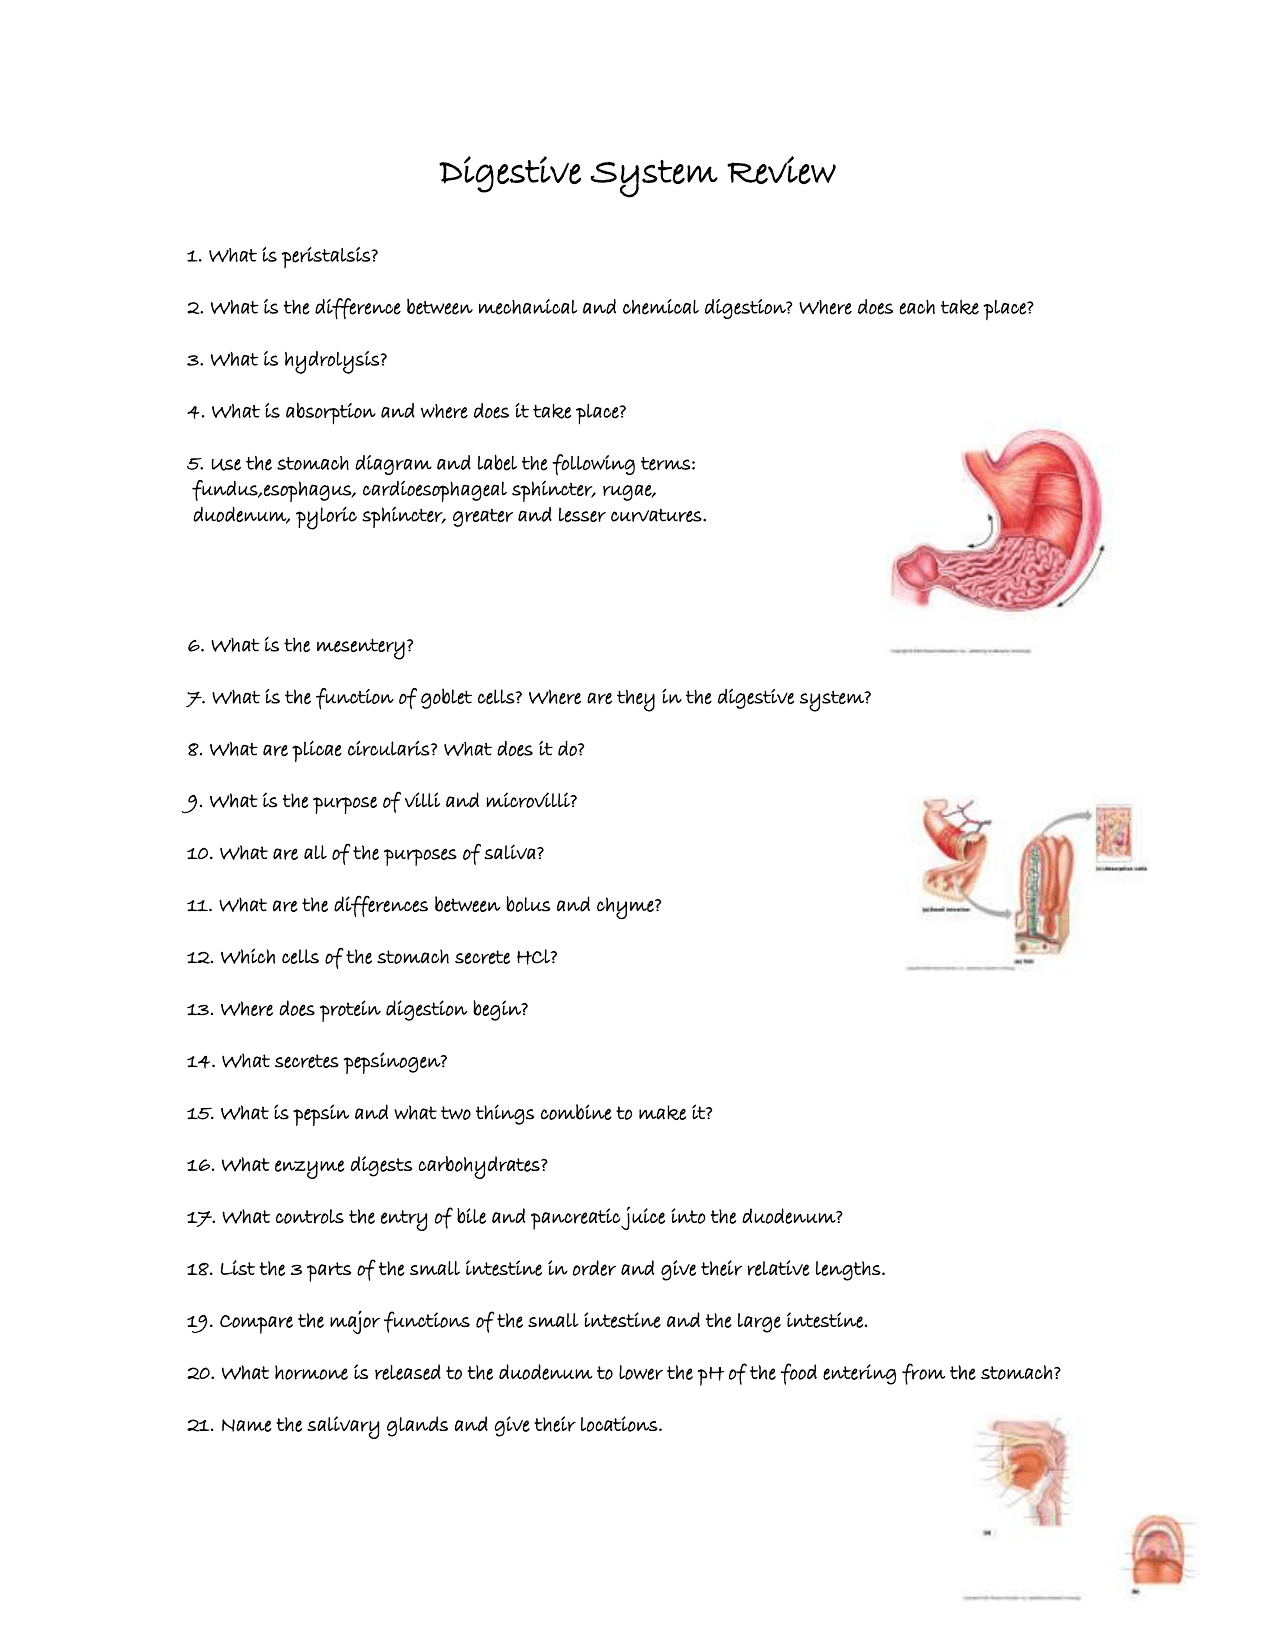 Digestive System Review